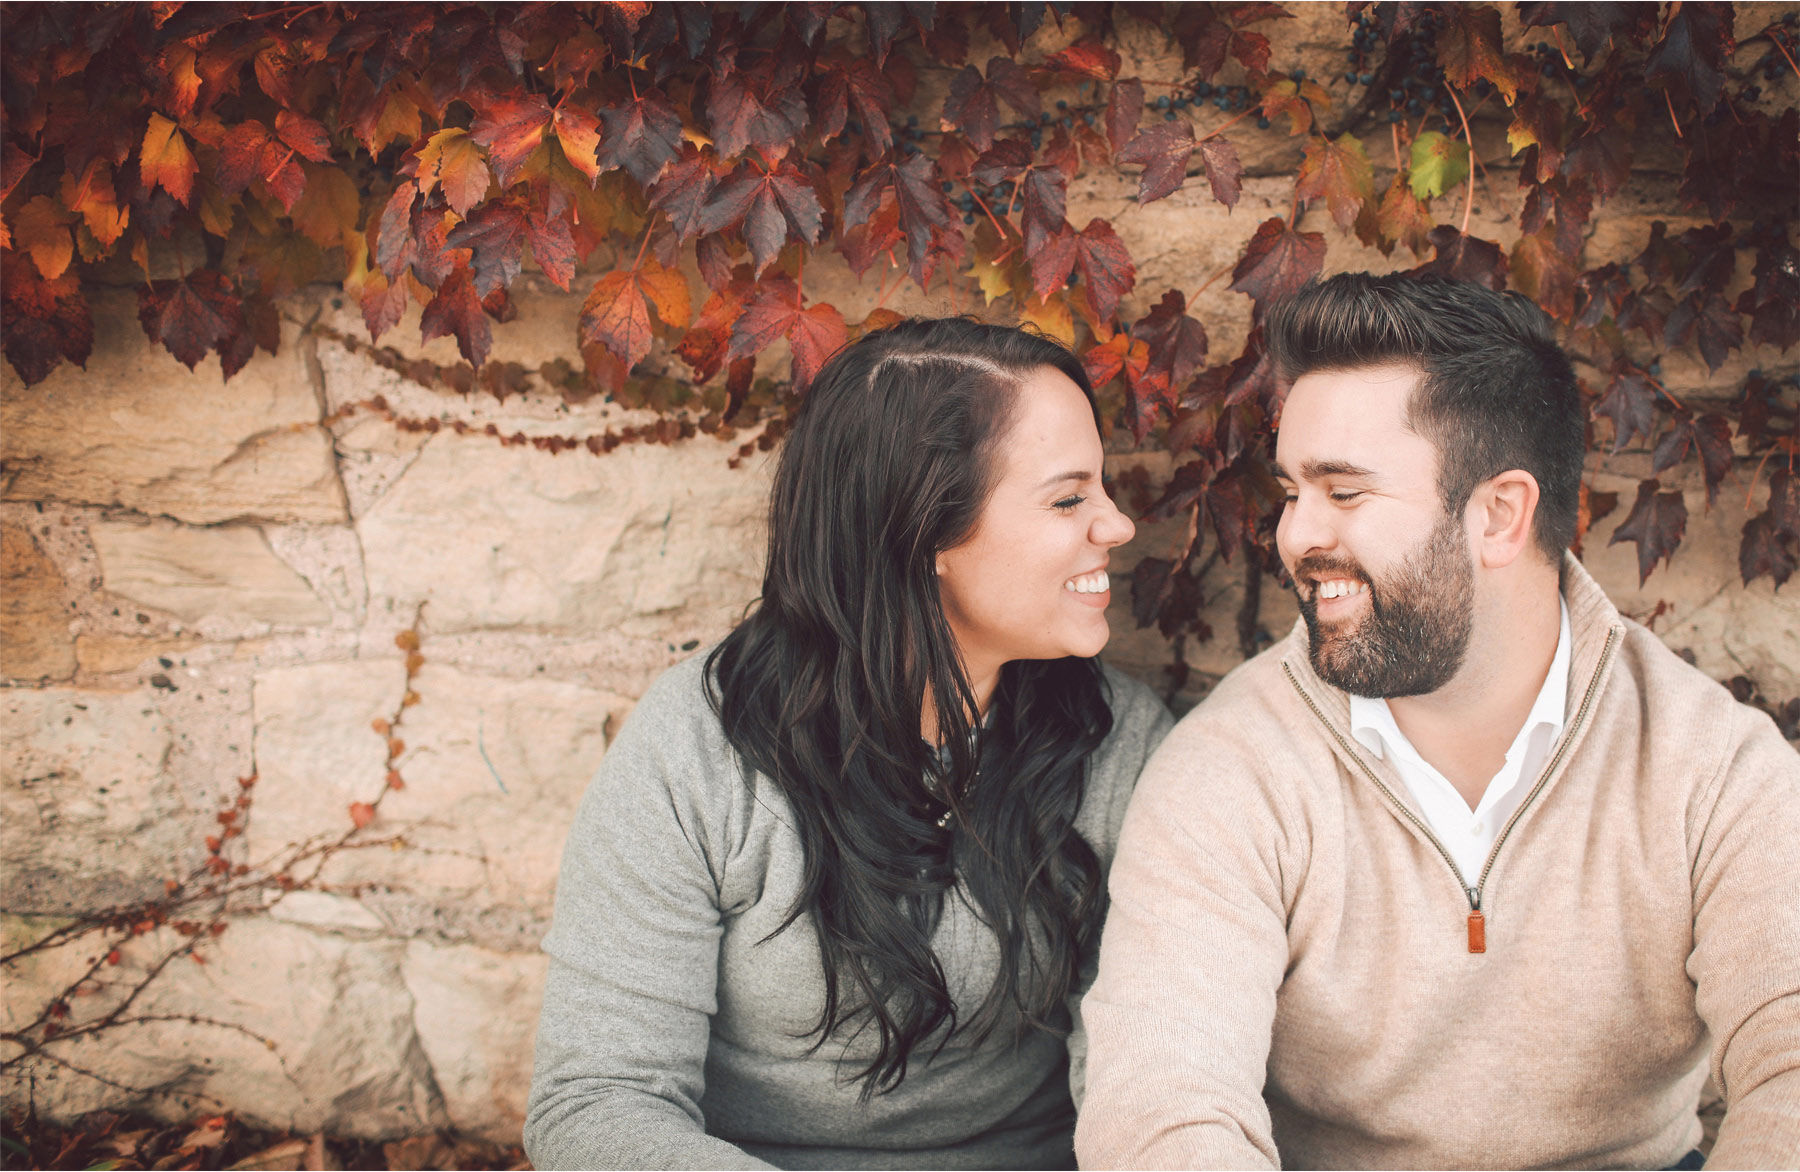 08-Stillwater-Minnesota-Wedding-Photographer-by-Andrew-Vick-Photography-Fall-Autumn-Engagement-Bride-Groom-Vintage-Gillian-and-Nick.jpg